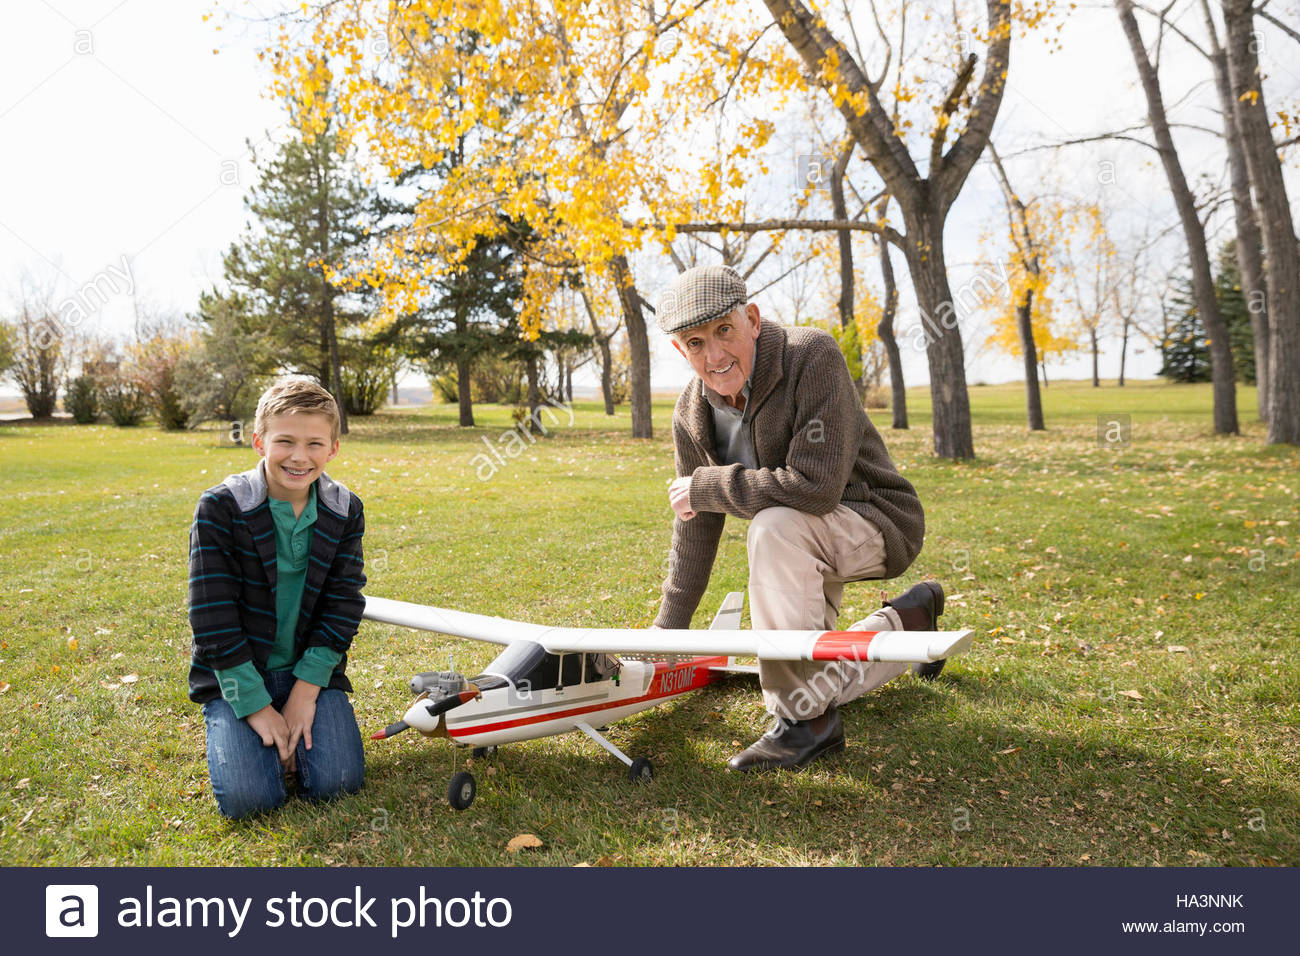 Portrait grandfather and grandson with model airplane in autumn park - Stock Image